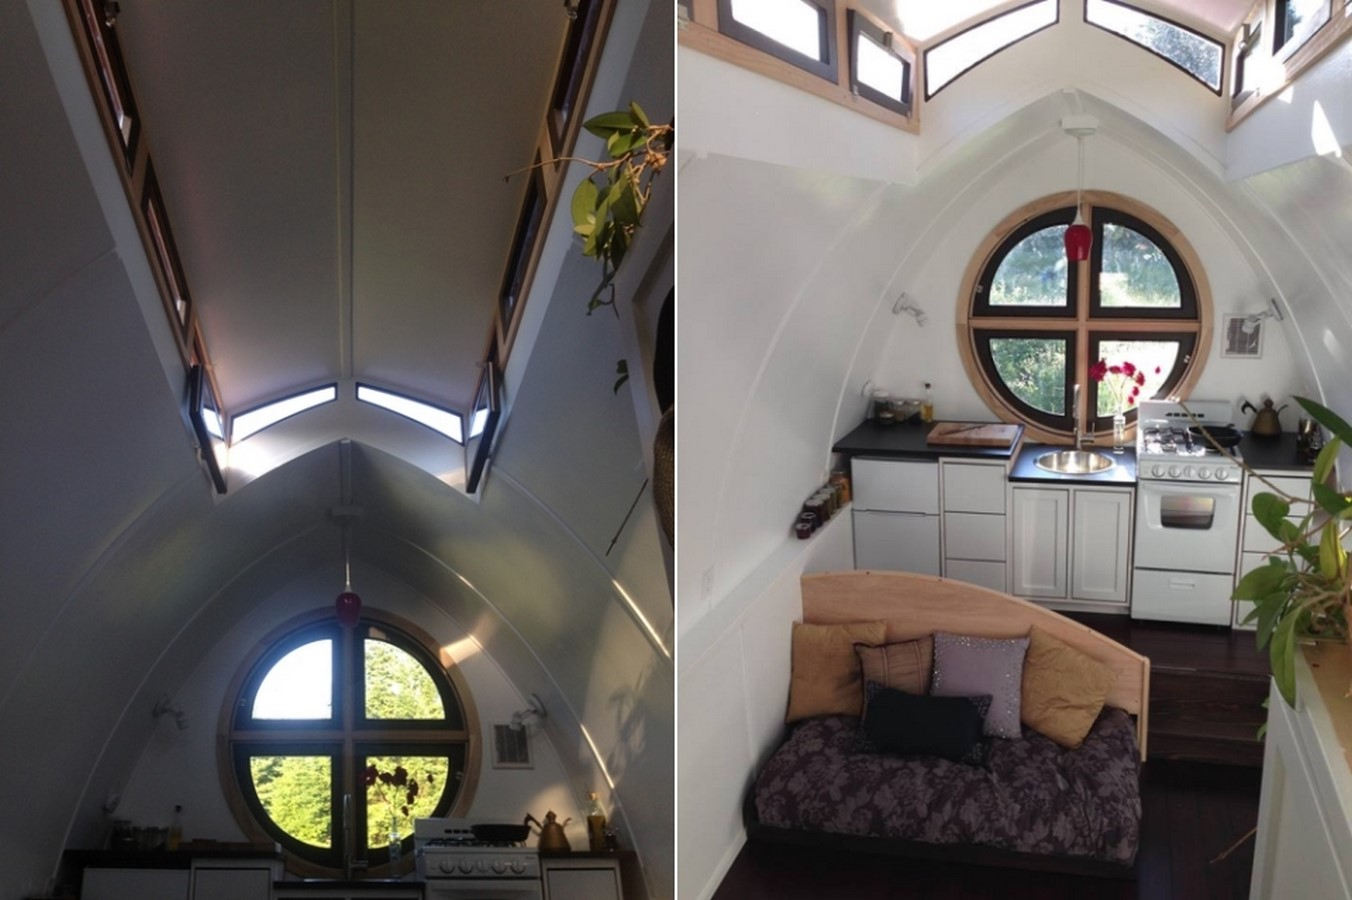 15 Examples of Tiny-home designs - Sheet42